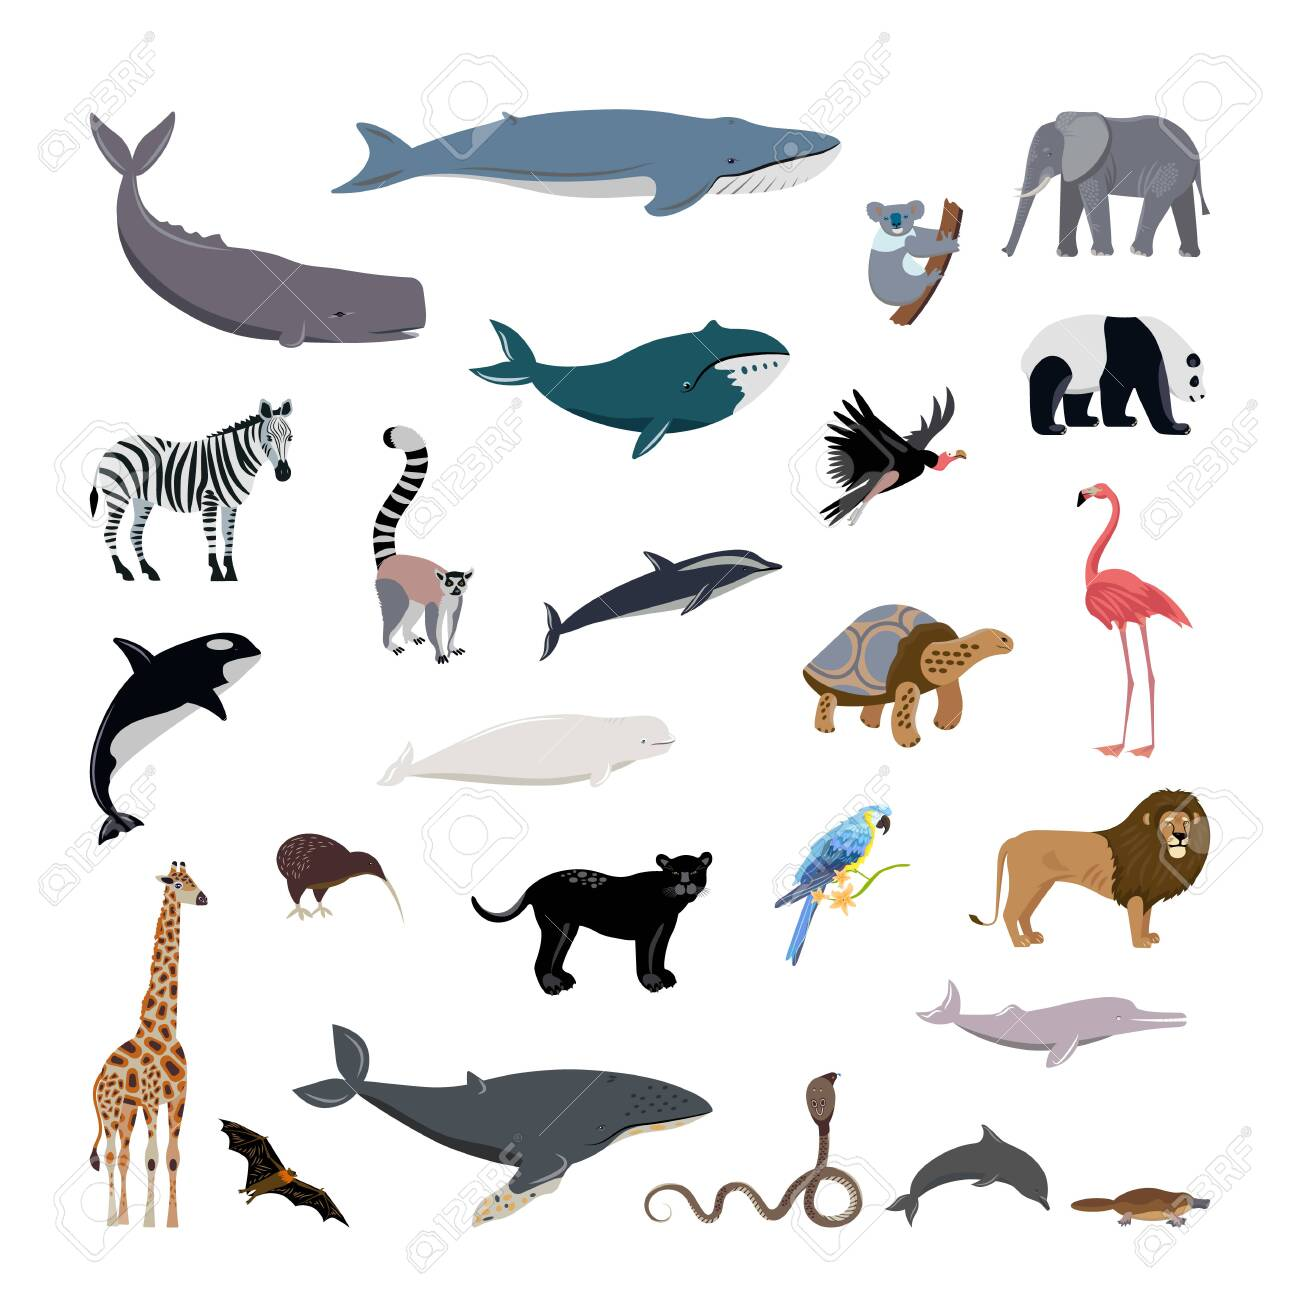 Big Set Cartoon Style Icons Of Different Animals Birds Whales